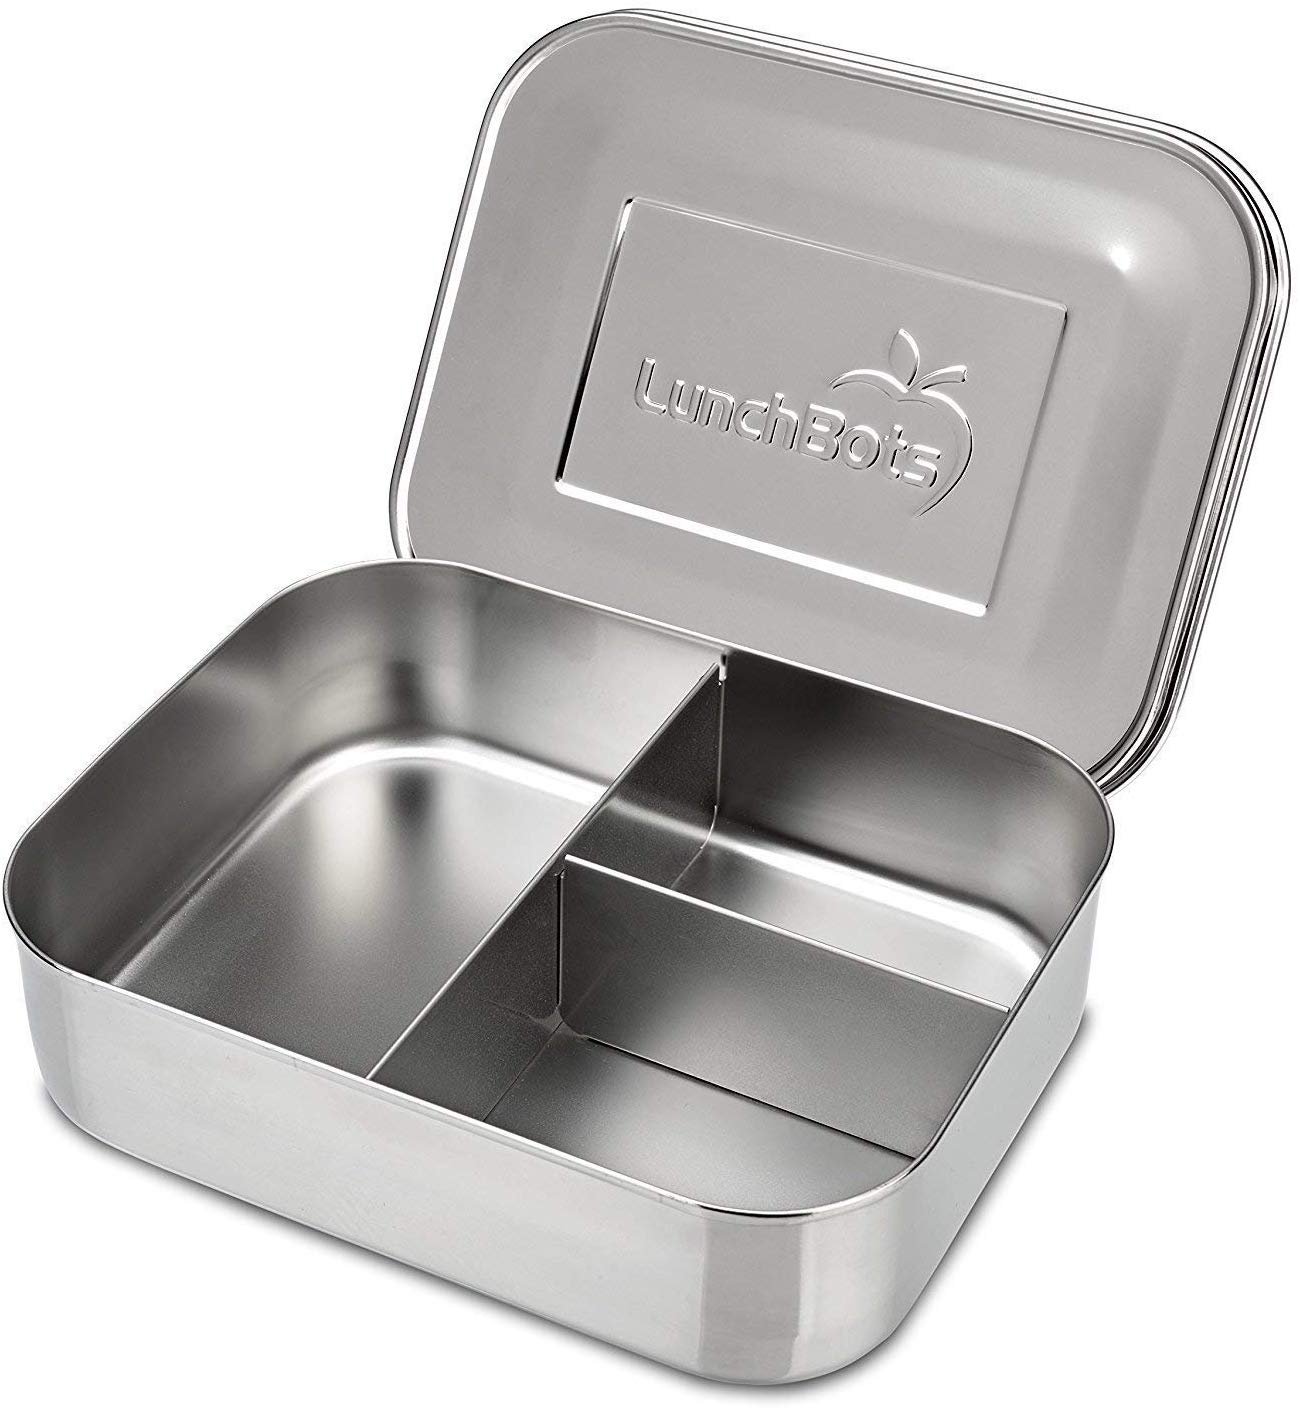 Review of LunchBots Medium Trio II Divided Stainless Steel Food Container